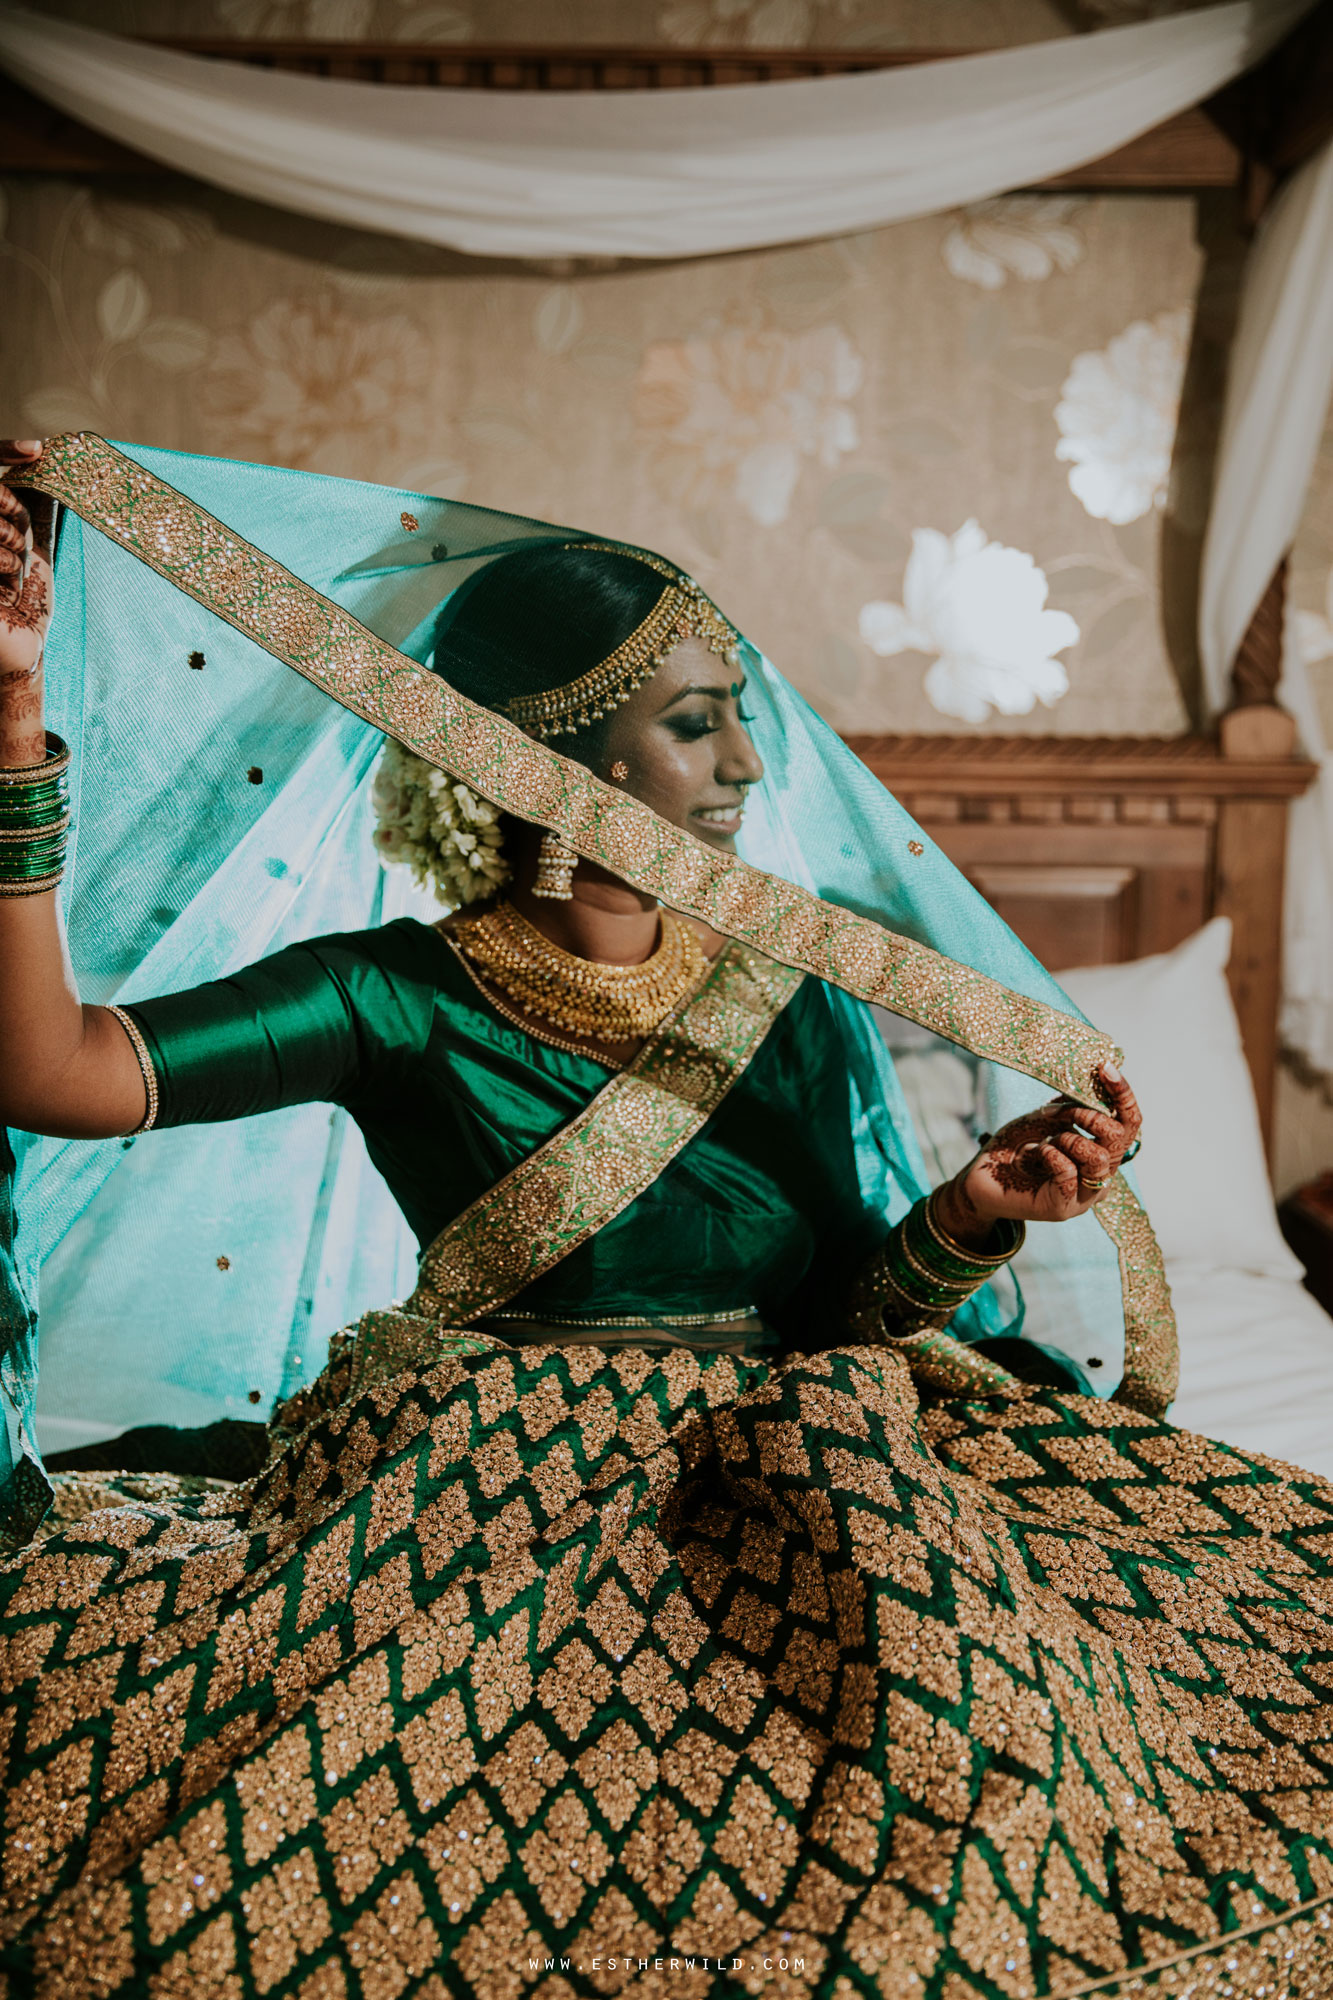 Northbrook_Park_Farnham_Surrey_London_Wedding_Hindu_Fusion_Esther_Wild_Photographer_IMG_3070.jpg